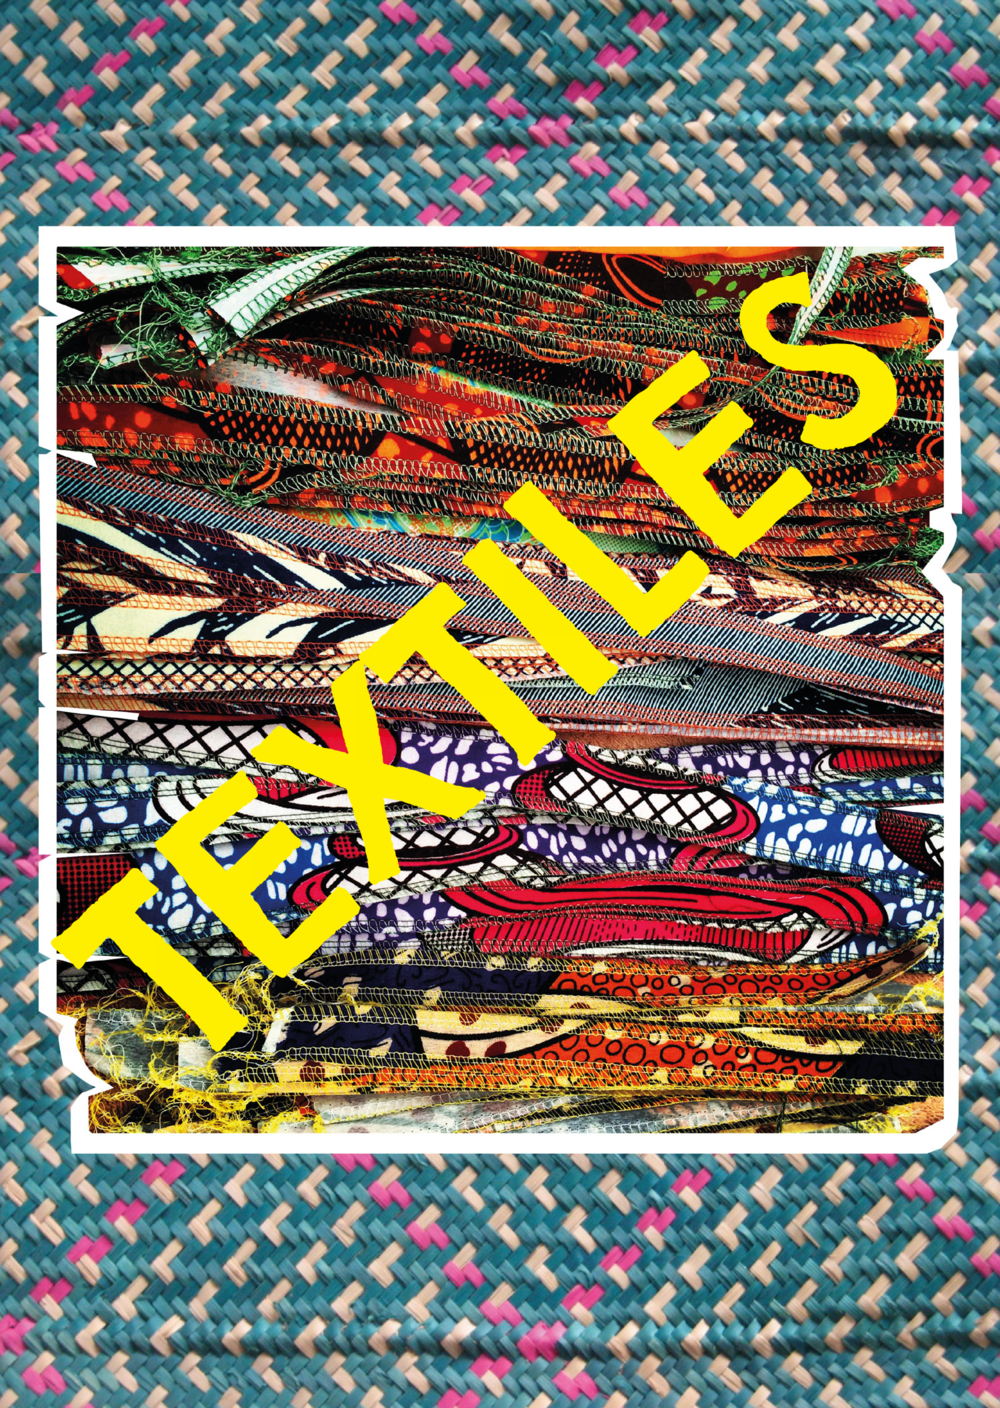 PRINT-N-STITCH FIND OUT MORE ABOUT OUR TEXTILE COLLABORATIONS & EVENTS